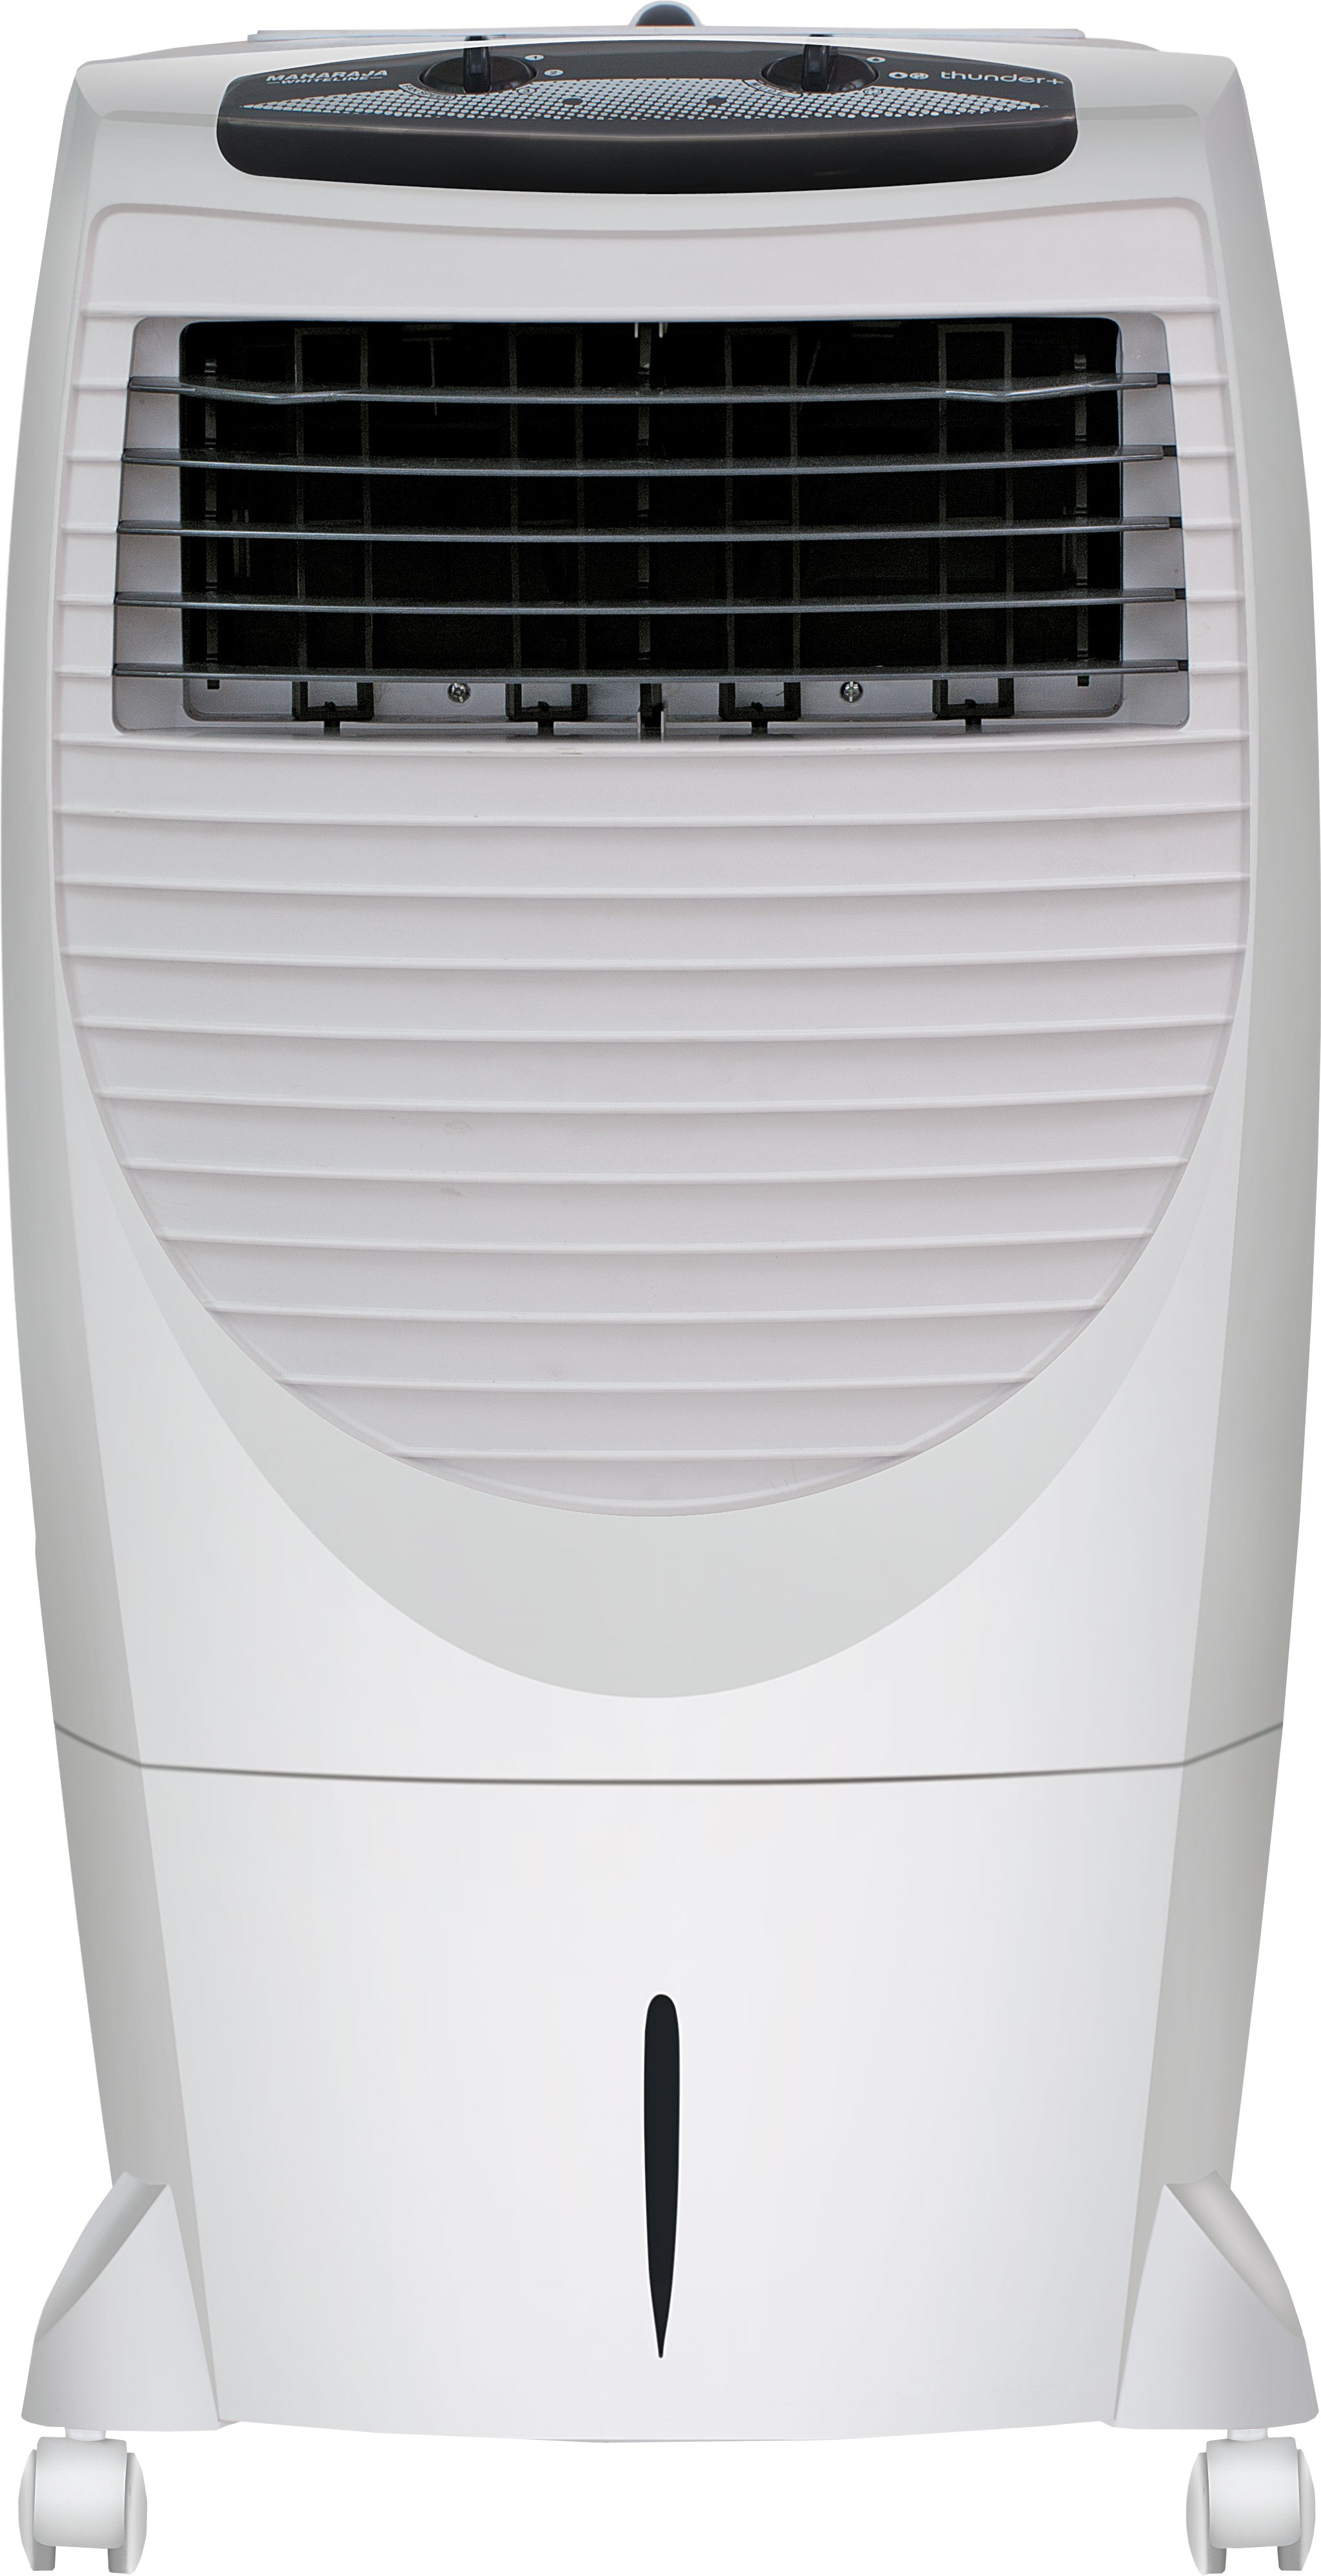 Maharaja Whiteline CO-101 Personal Air Cooler Image